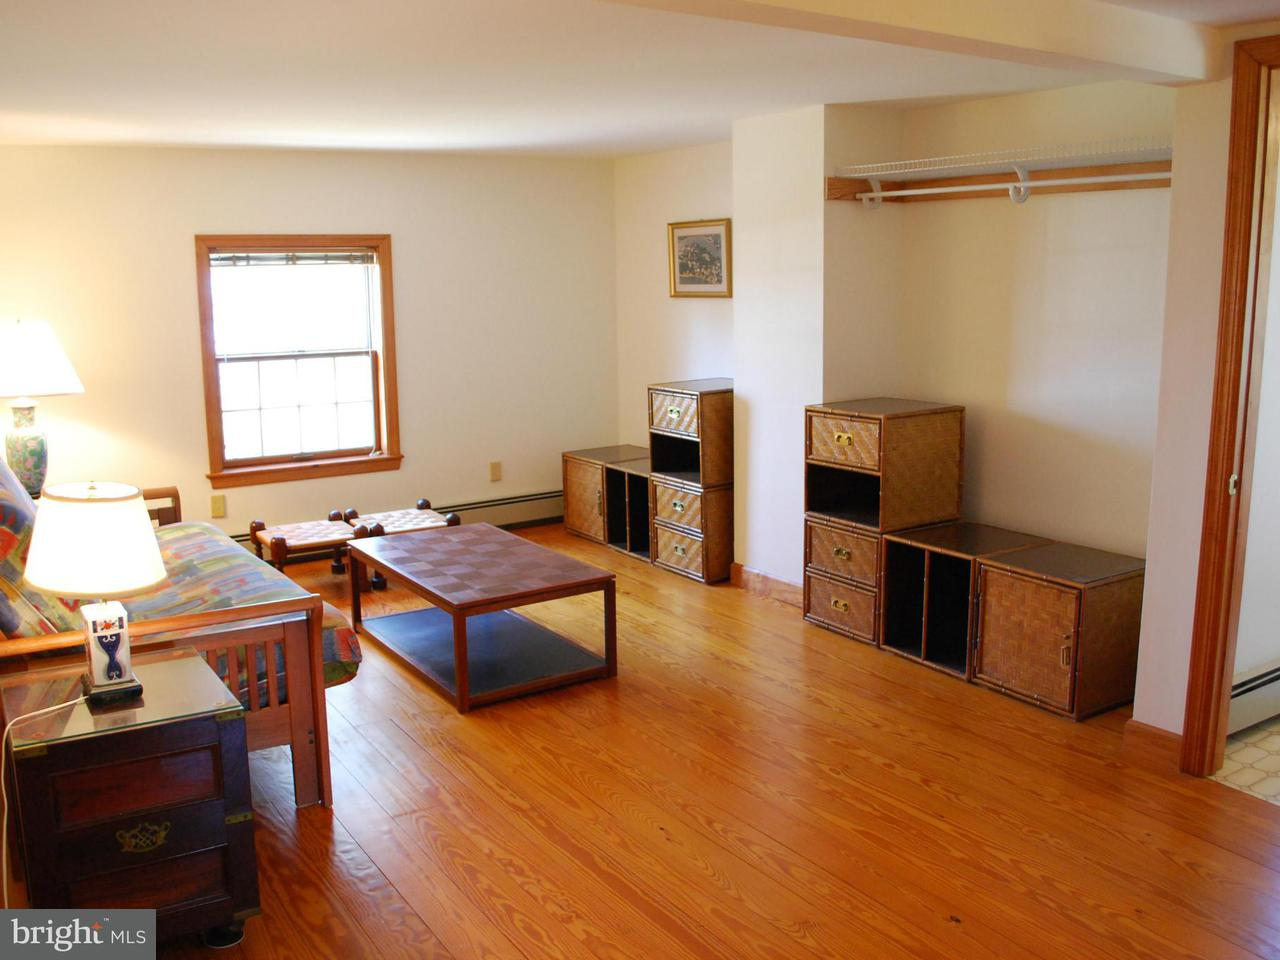 Additional photo for property listing at 210 Morris St S 210 Morris St S Oxford, メリーランド 21654 アメリカ合衆国